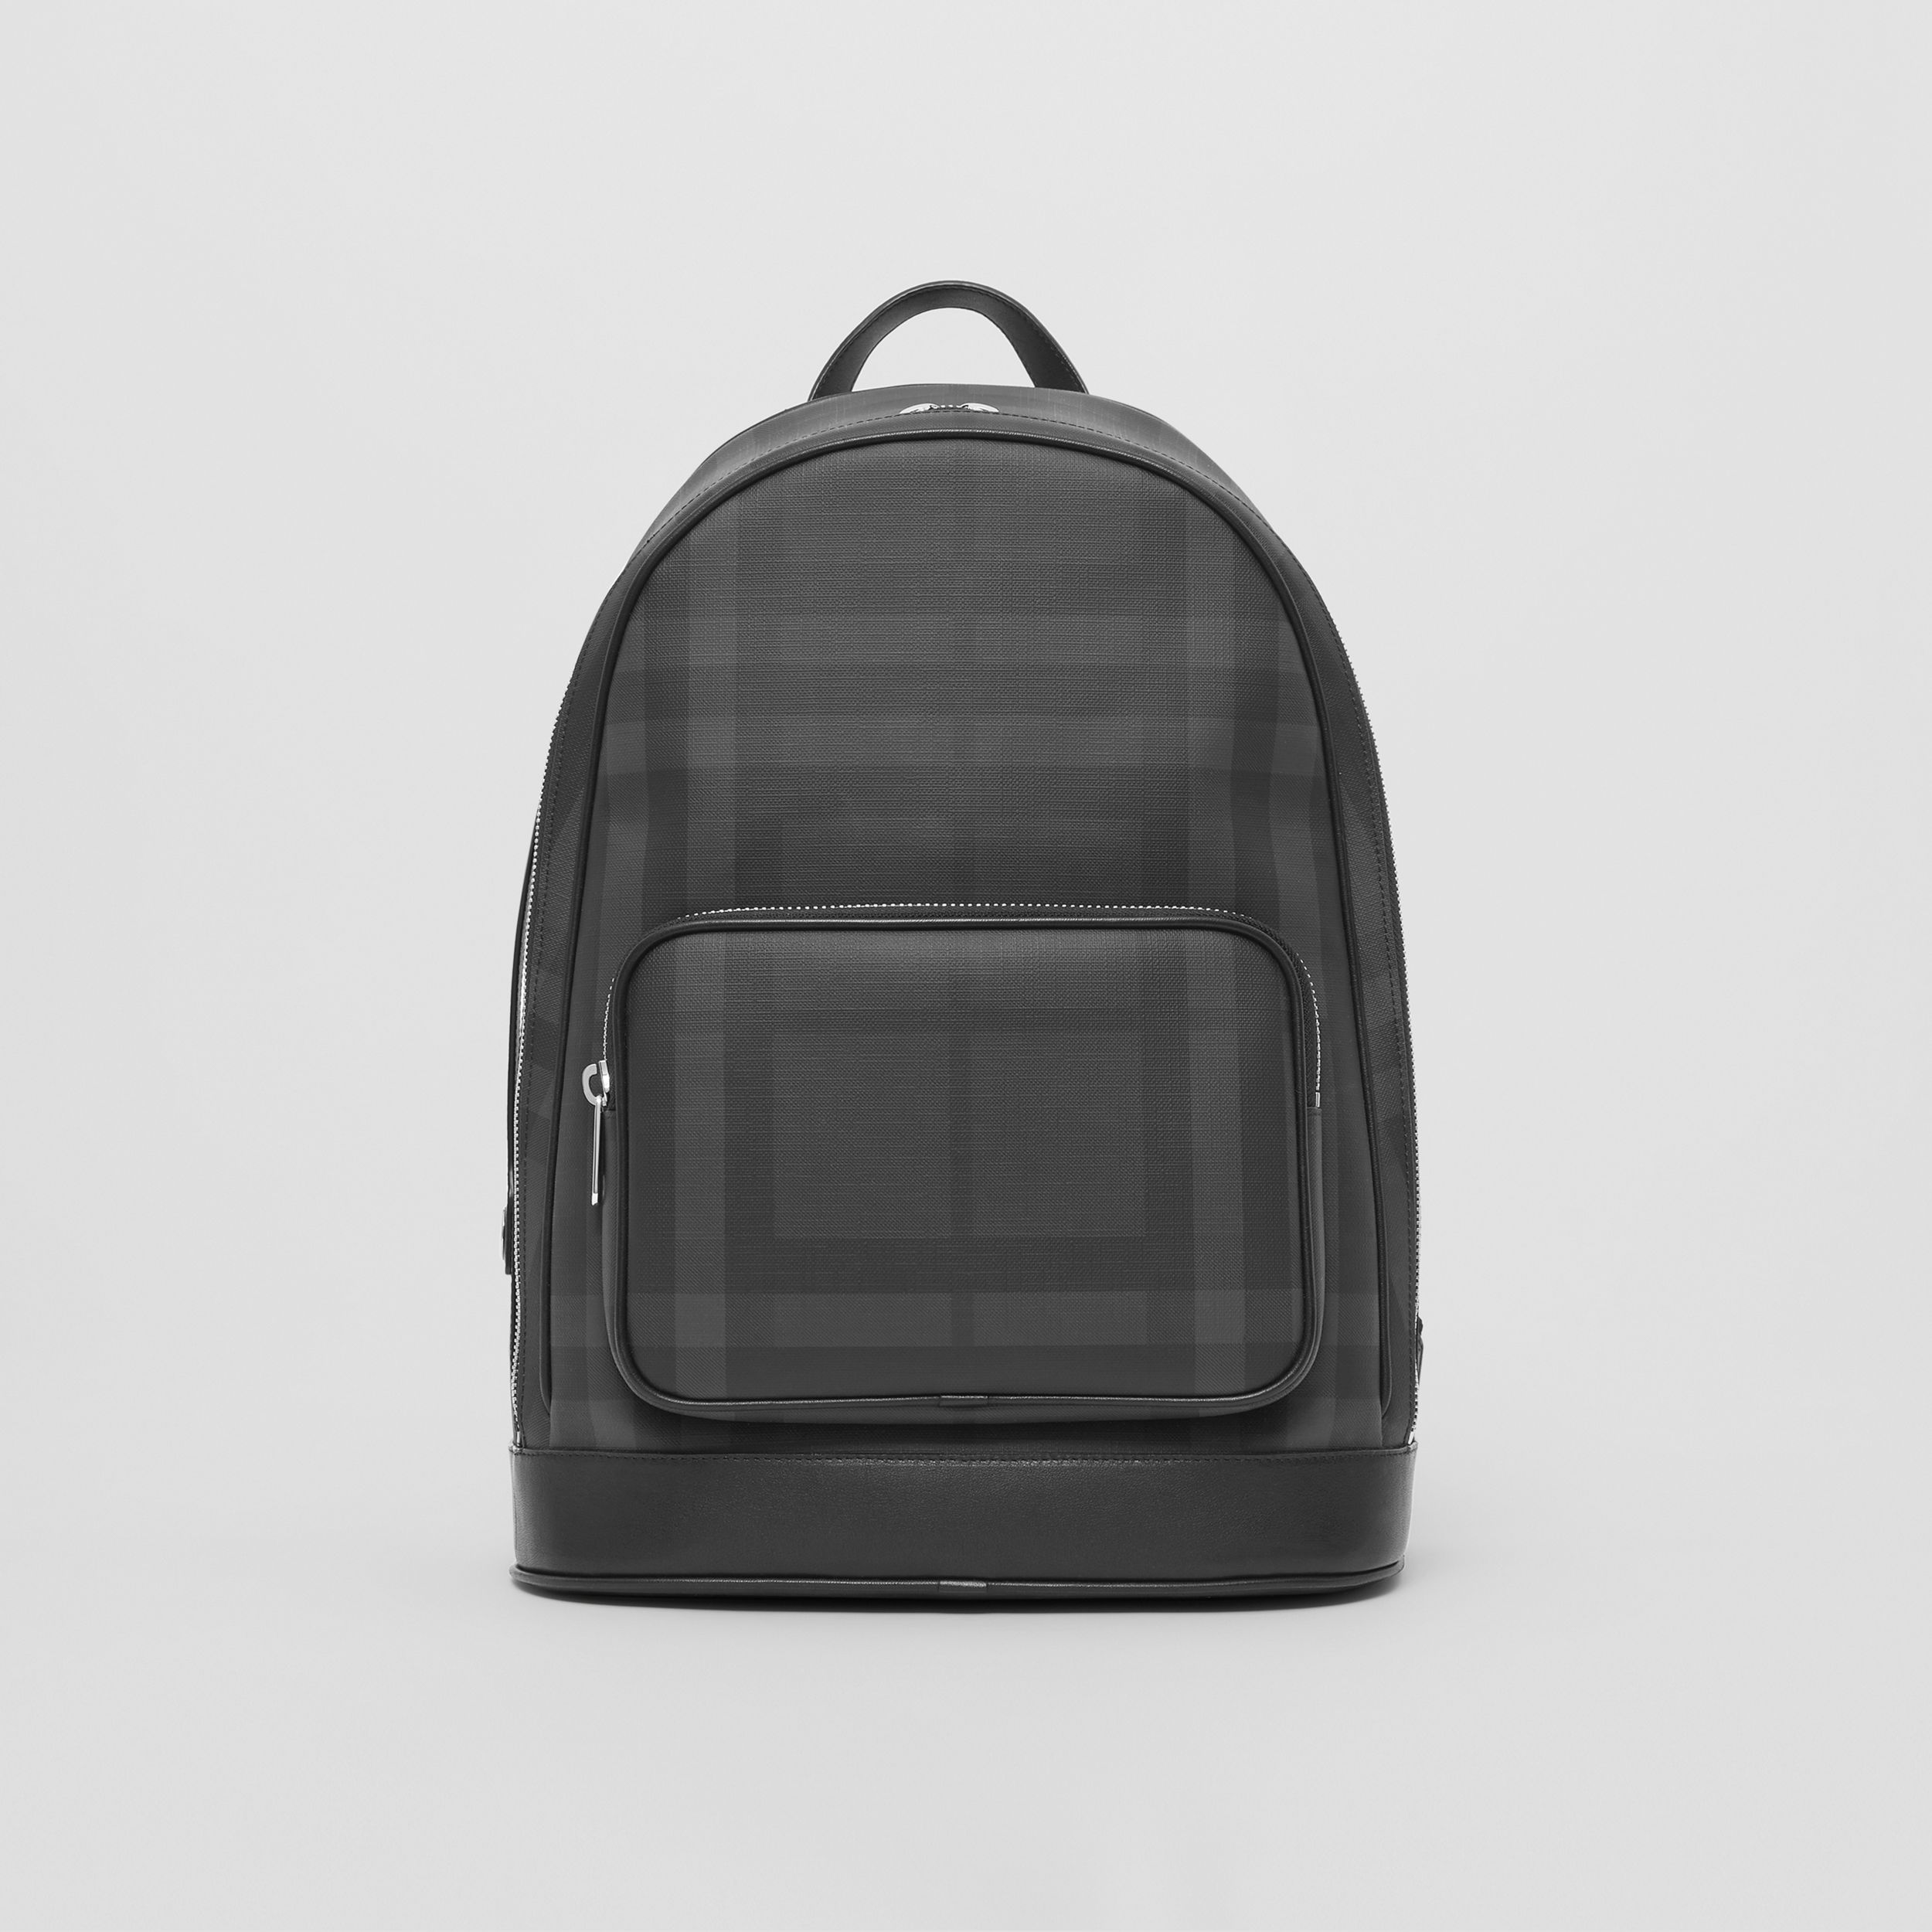 London Check and Leather Backpack in Dark Charcoal - Men | Burberry Australia - 1